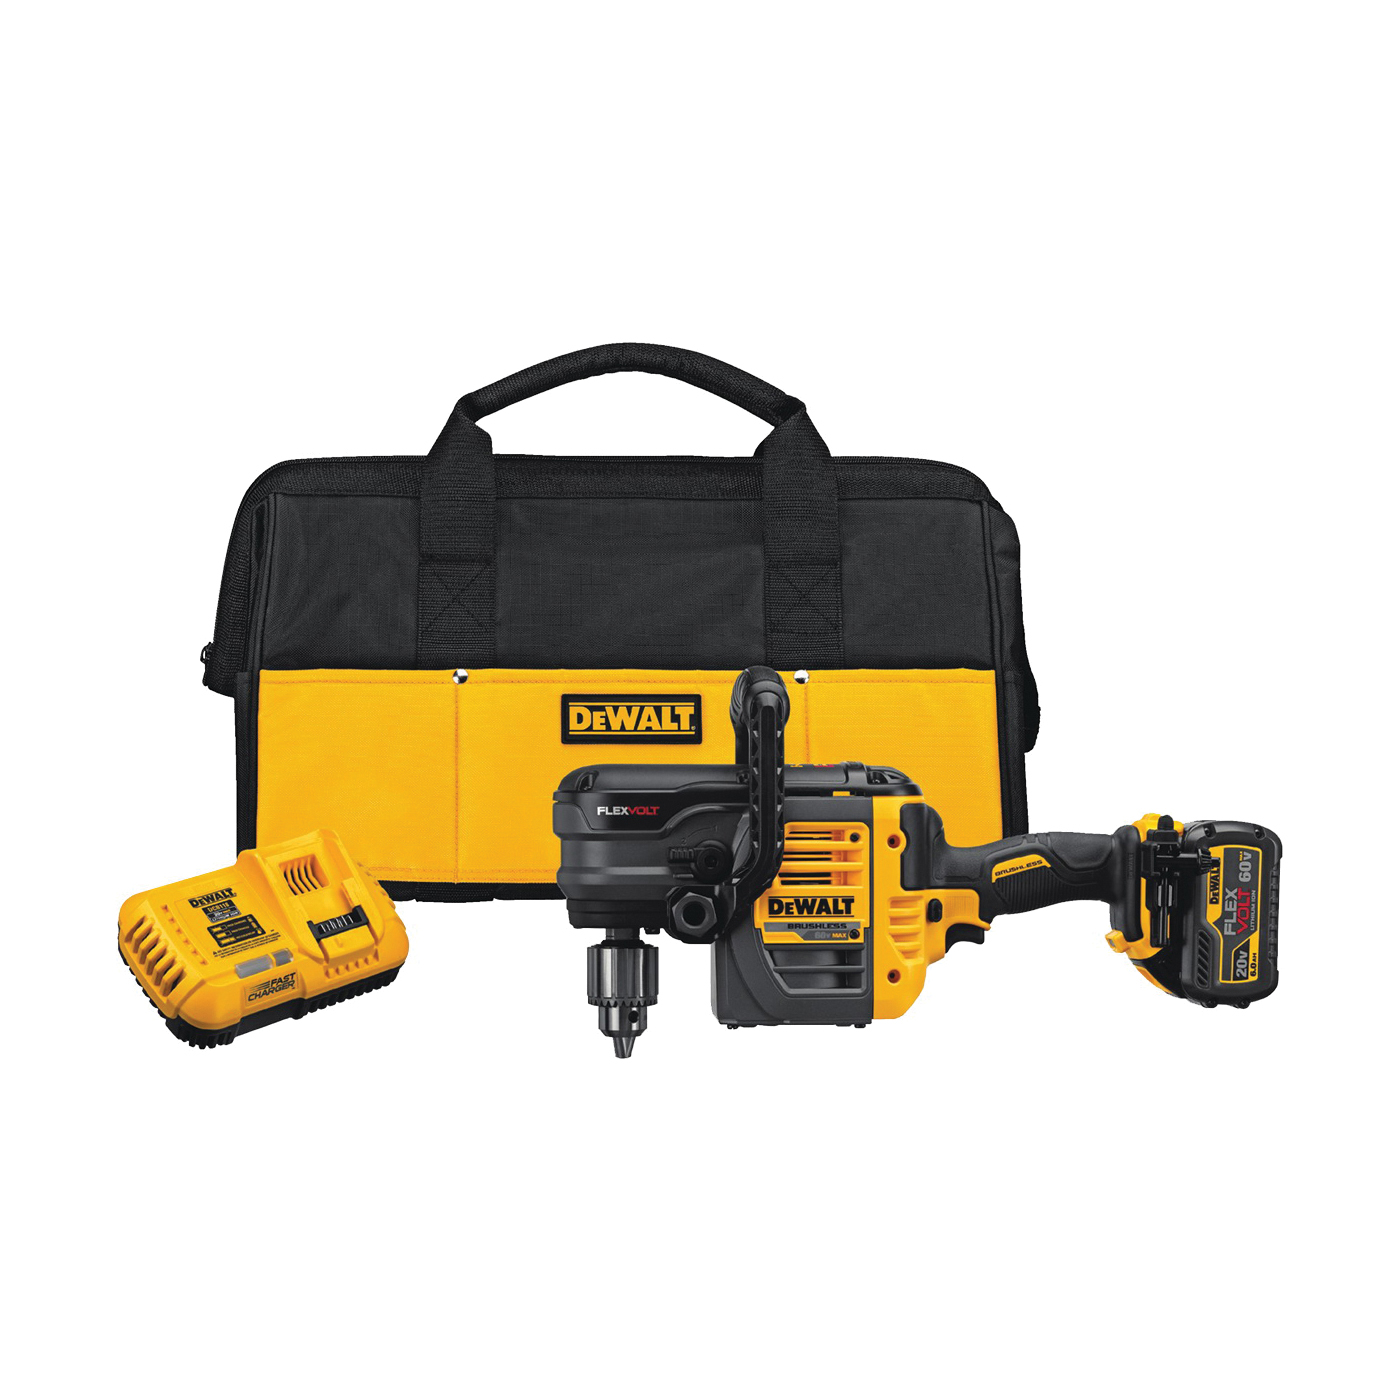 Picture of DeWALT DCD460T1 Stud and Joist Drill Kit, Kit, 60 V Battery, 1/2 in Chuck, Keyed Chuck, Battery Included: Yes